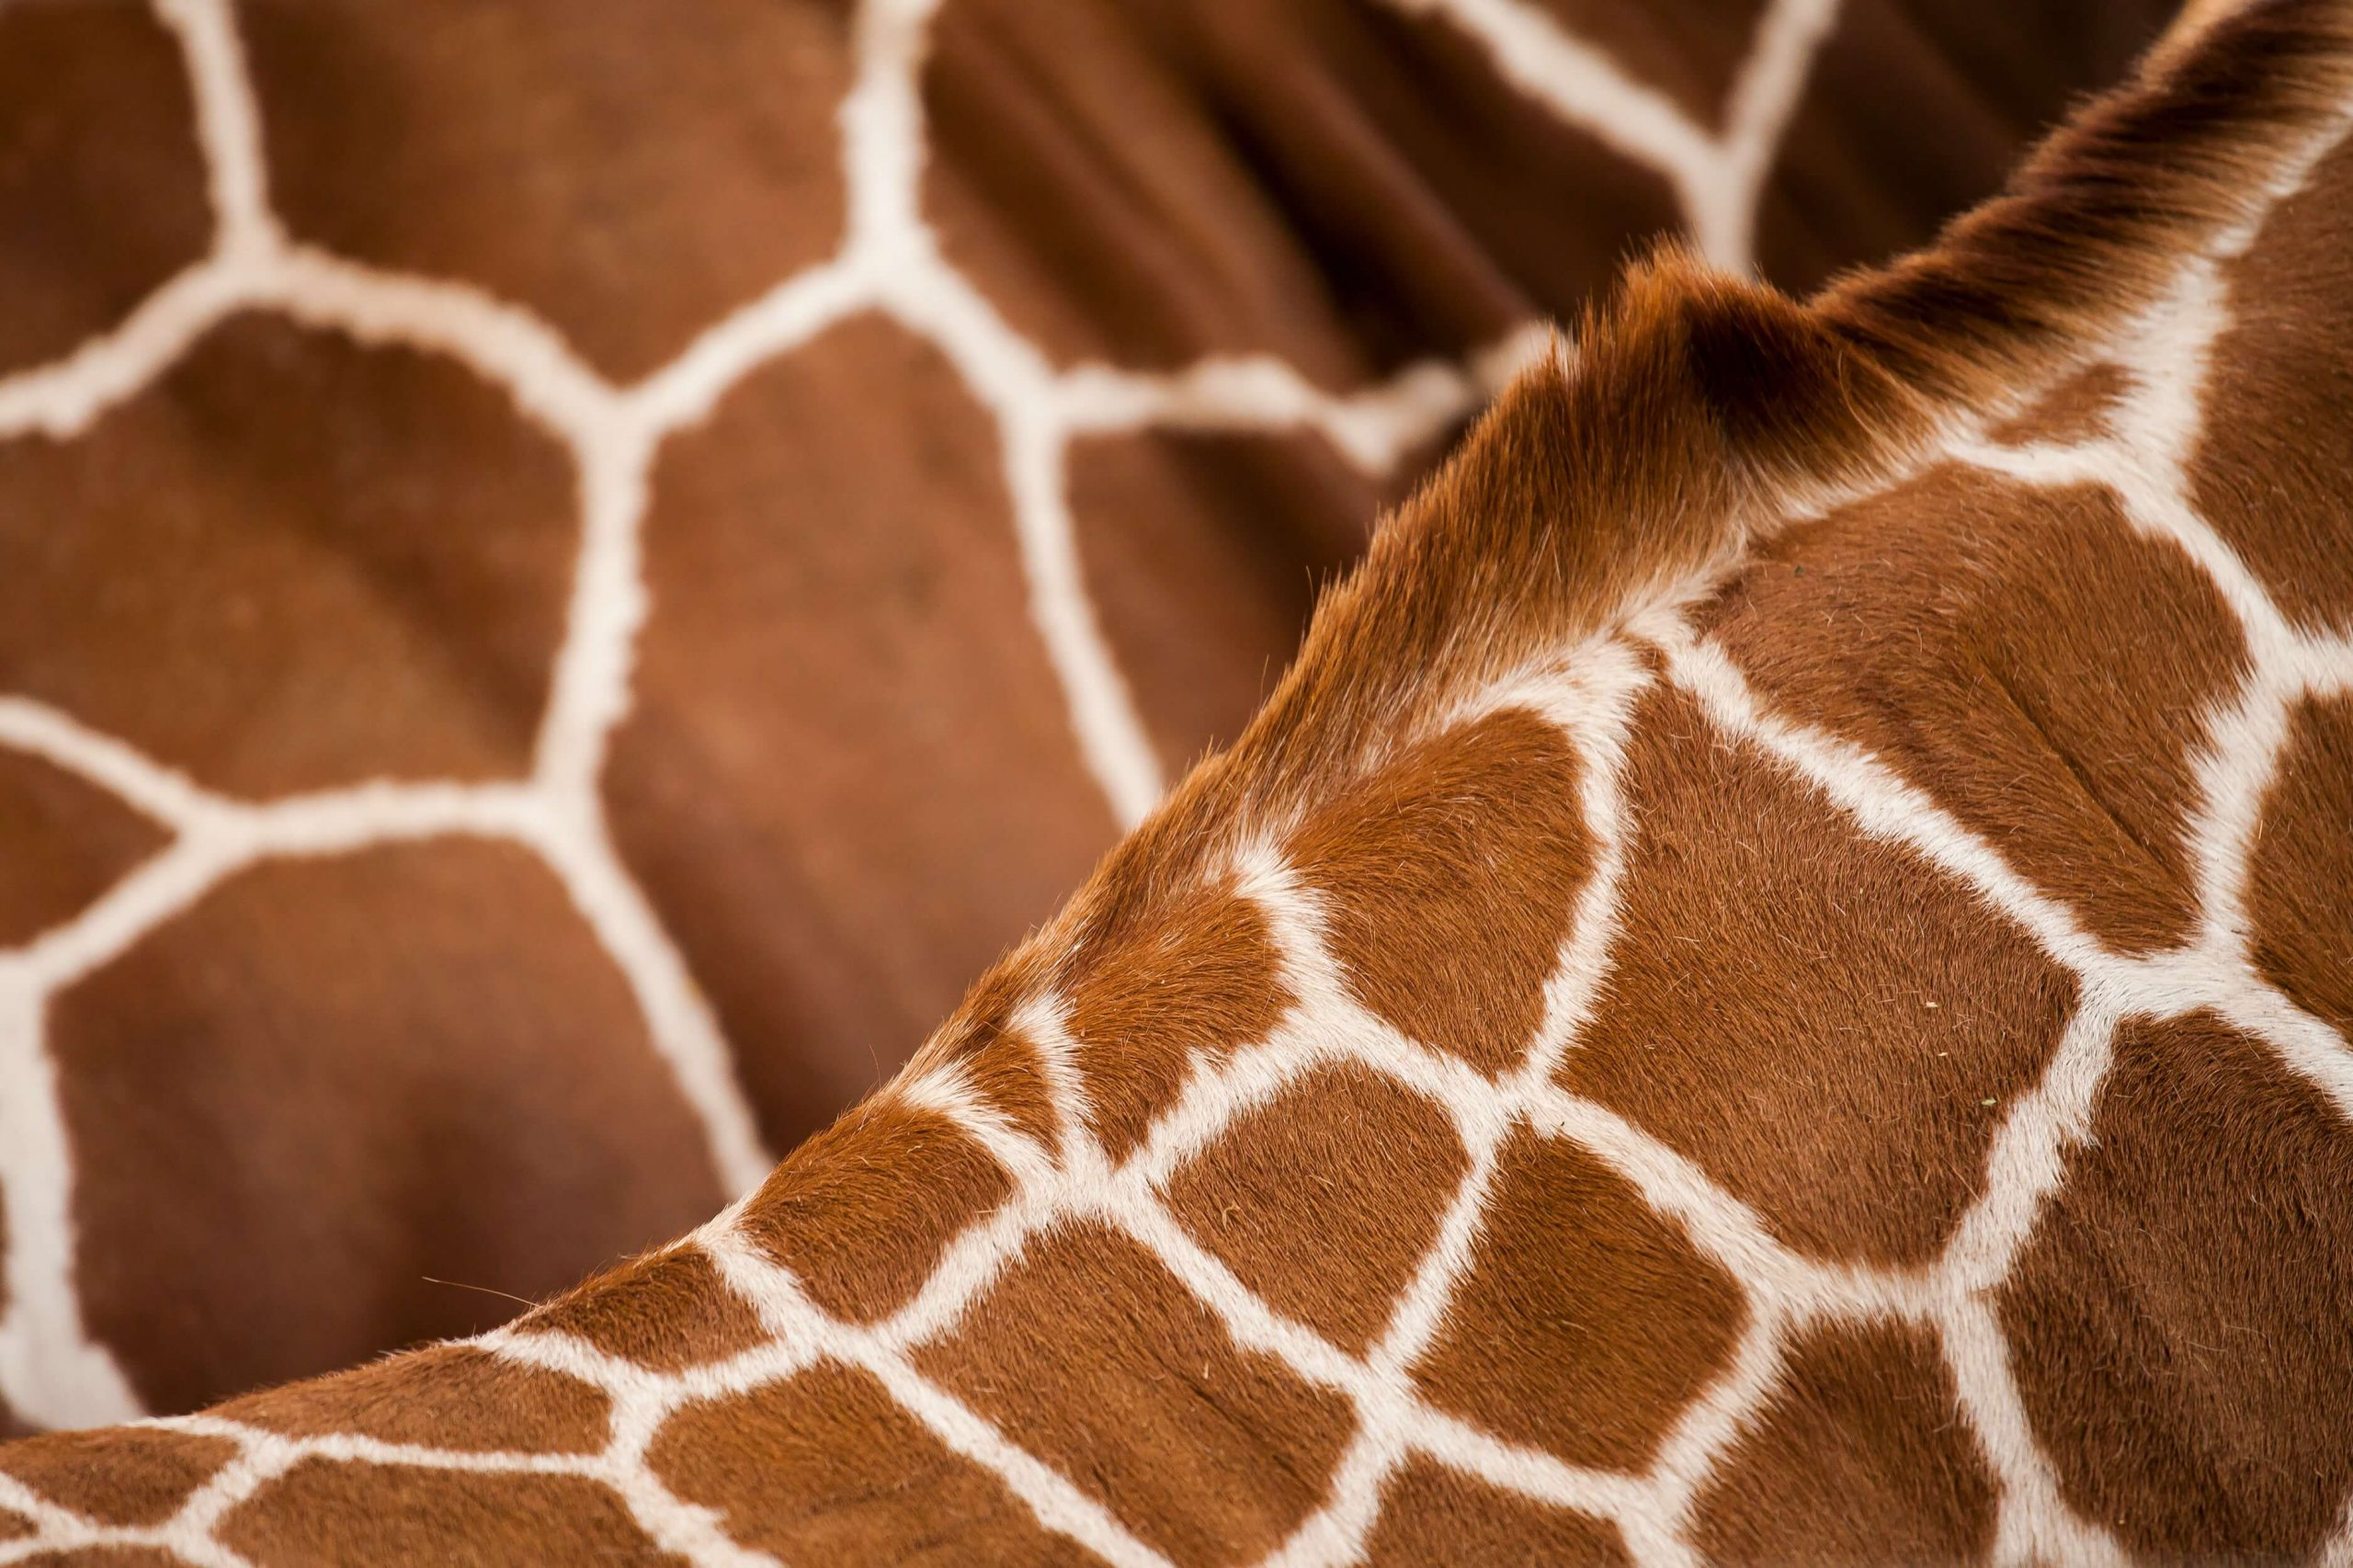 giraffe patches